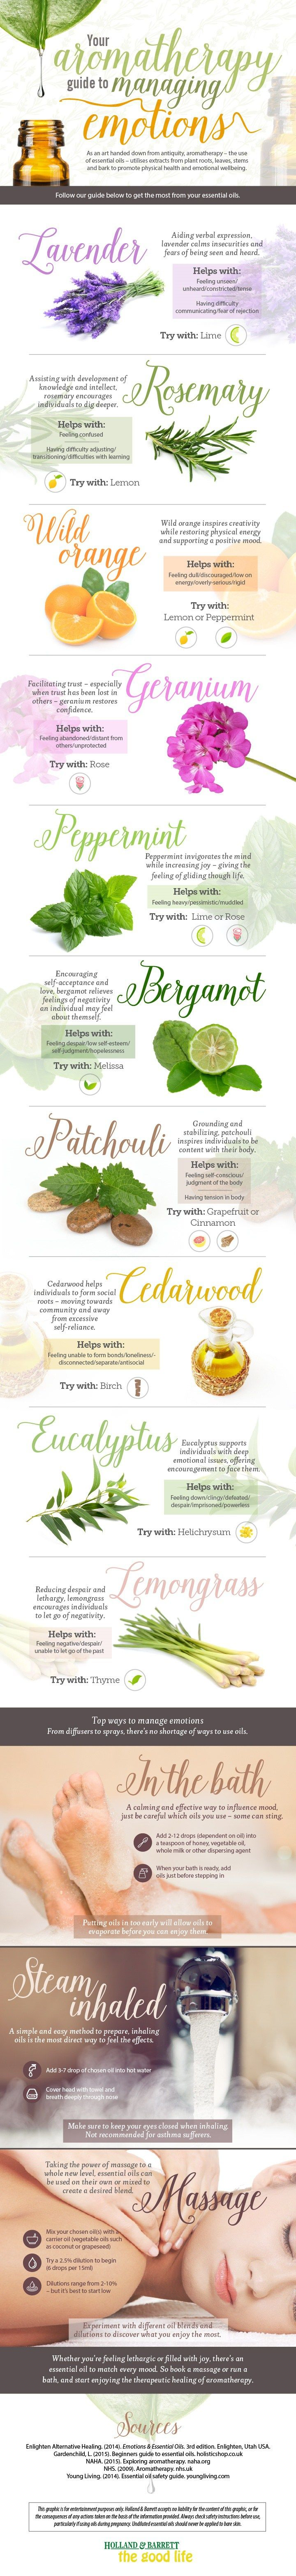 These 10 essential oil hacks that every woman should know are AMAZING! I'm so glad I found this! I've started using Jojoba Oil on my skin and it LOOKS AWESOME already! Definitely pinning for later!